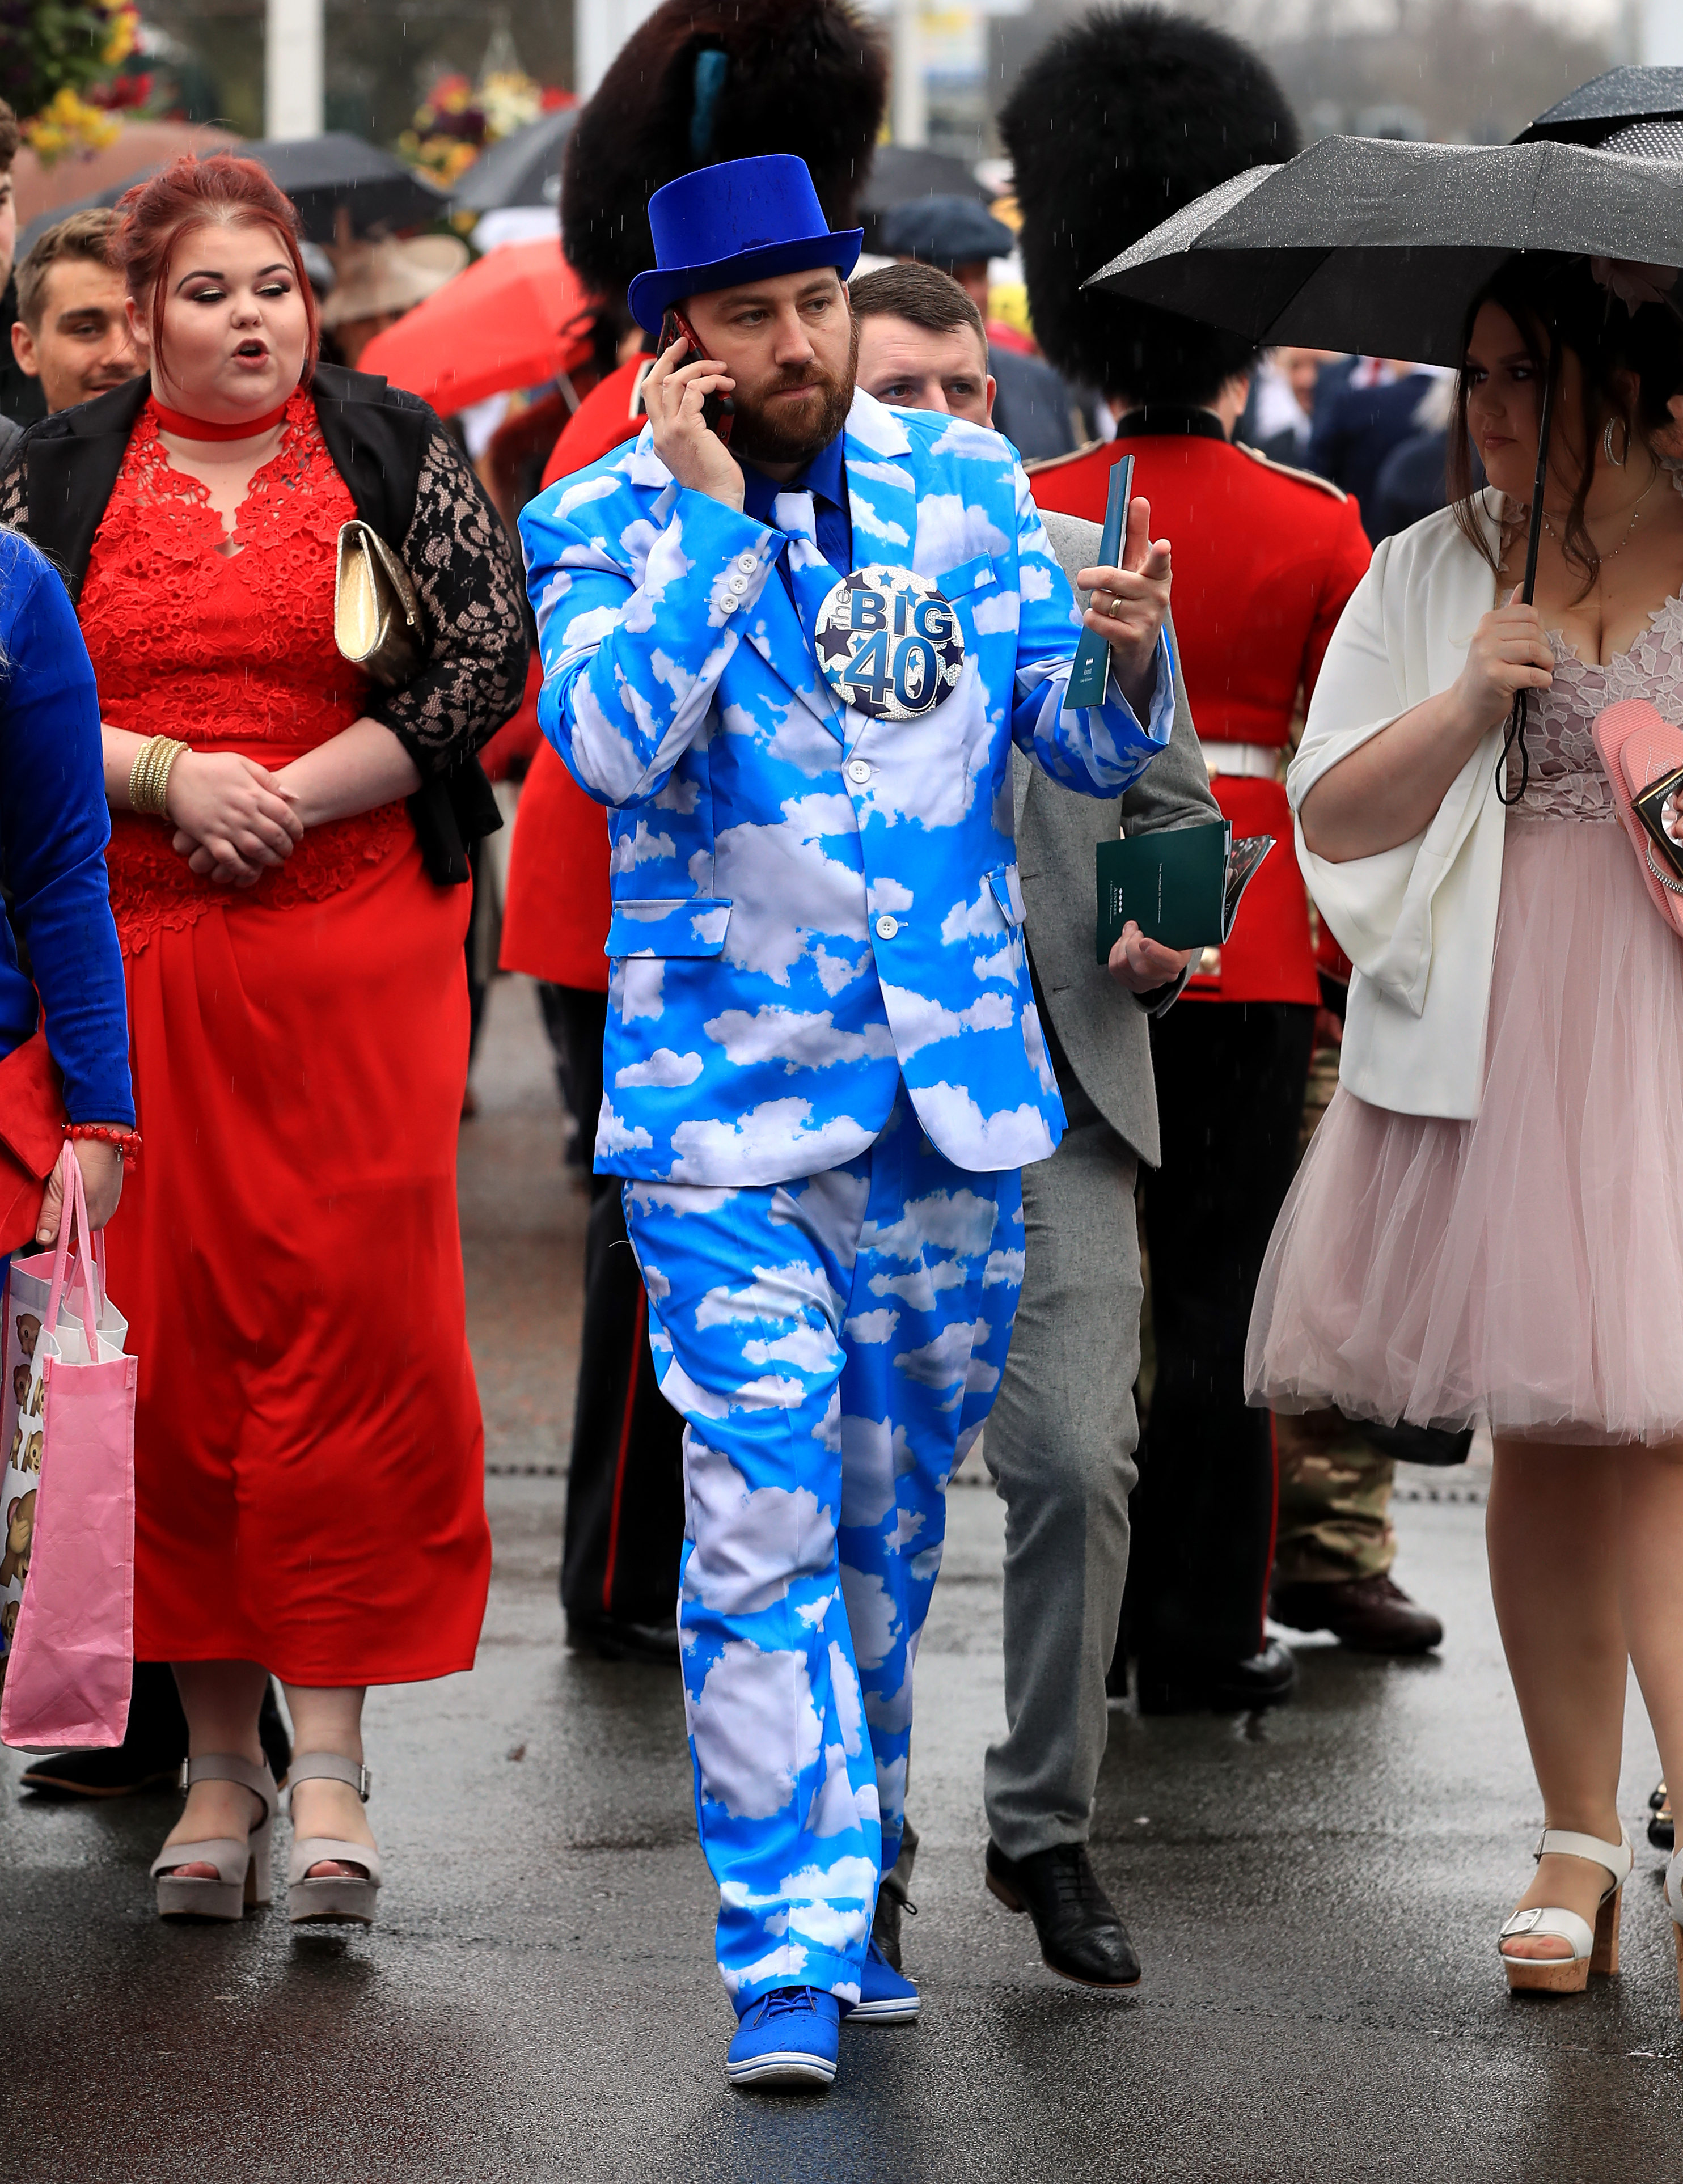 A racegoer wearing a suit adorned with clouds on his 40th birthday during Ladies Day of the 2018 Randox Health Grand National Festival at Aintree Racecourse, Liverpool.